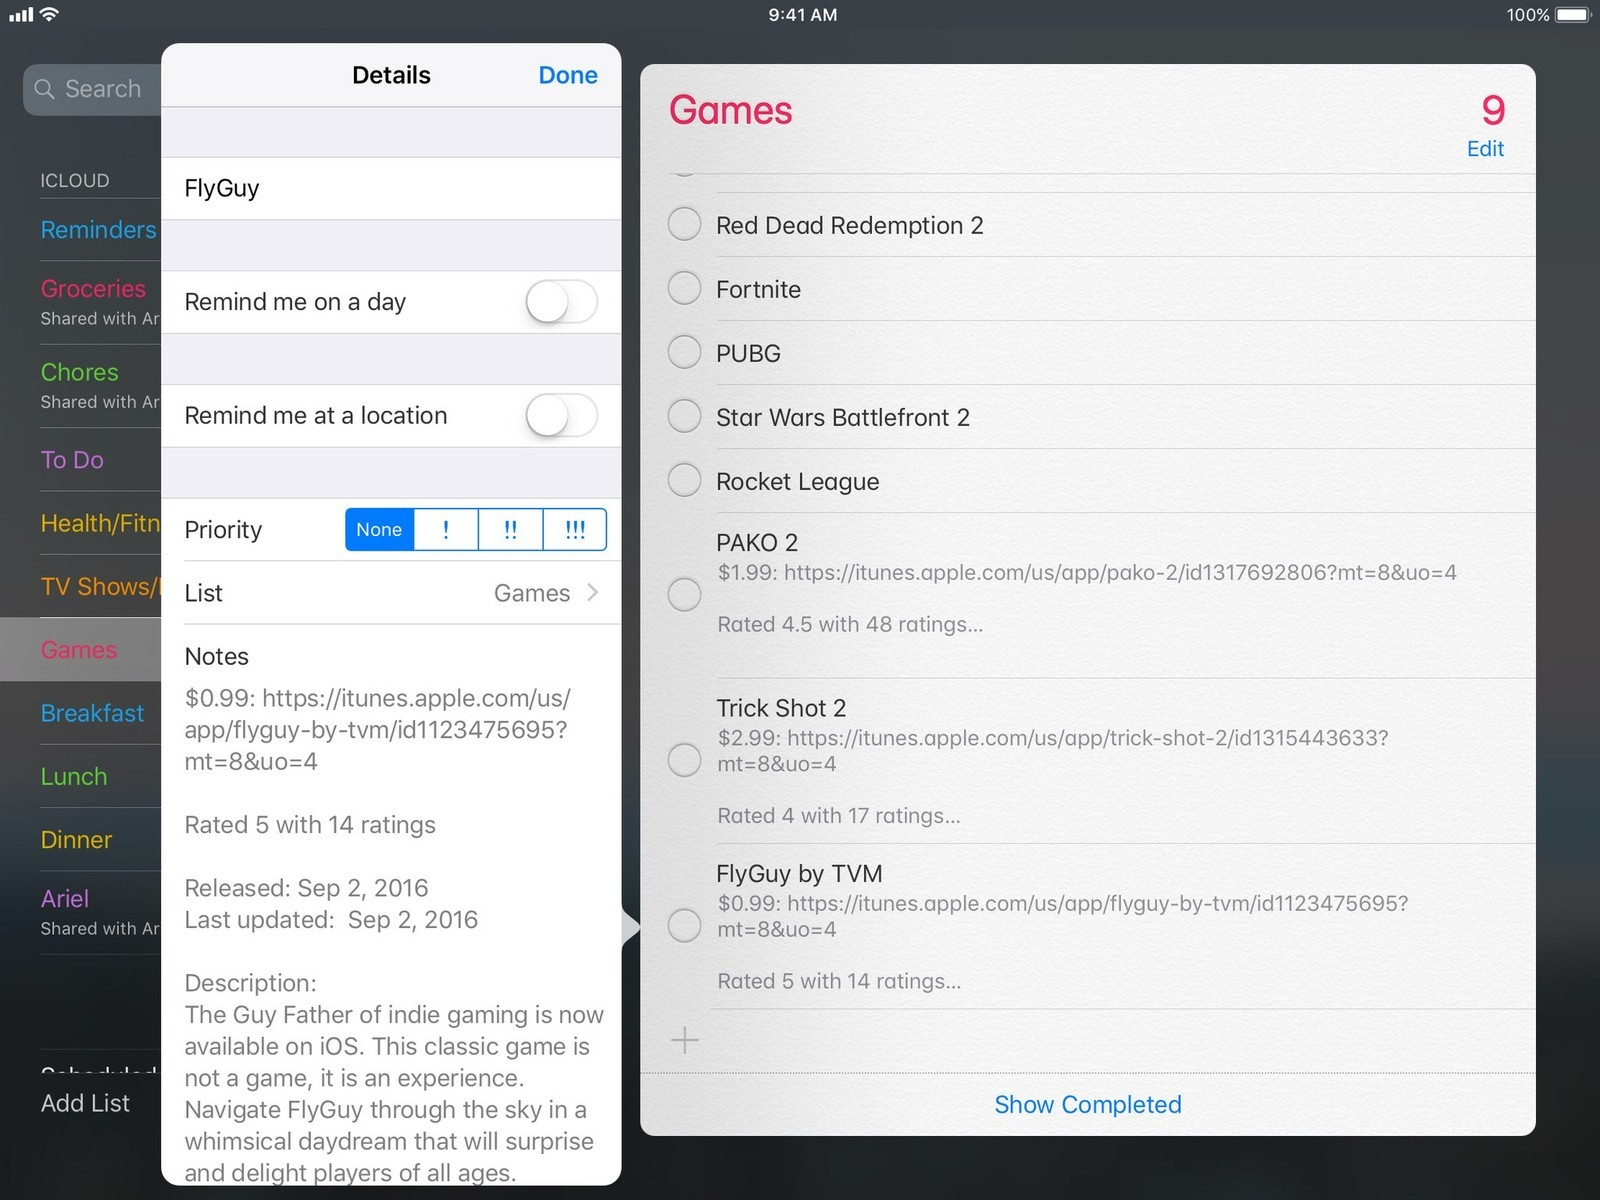 Screenshot of Games reminders list showing iOS games updated with more information after running the workflow